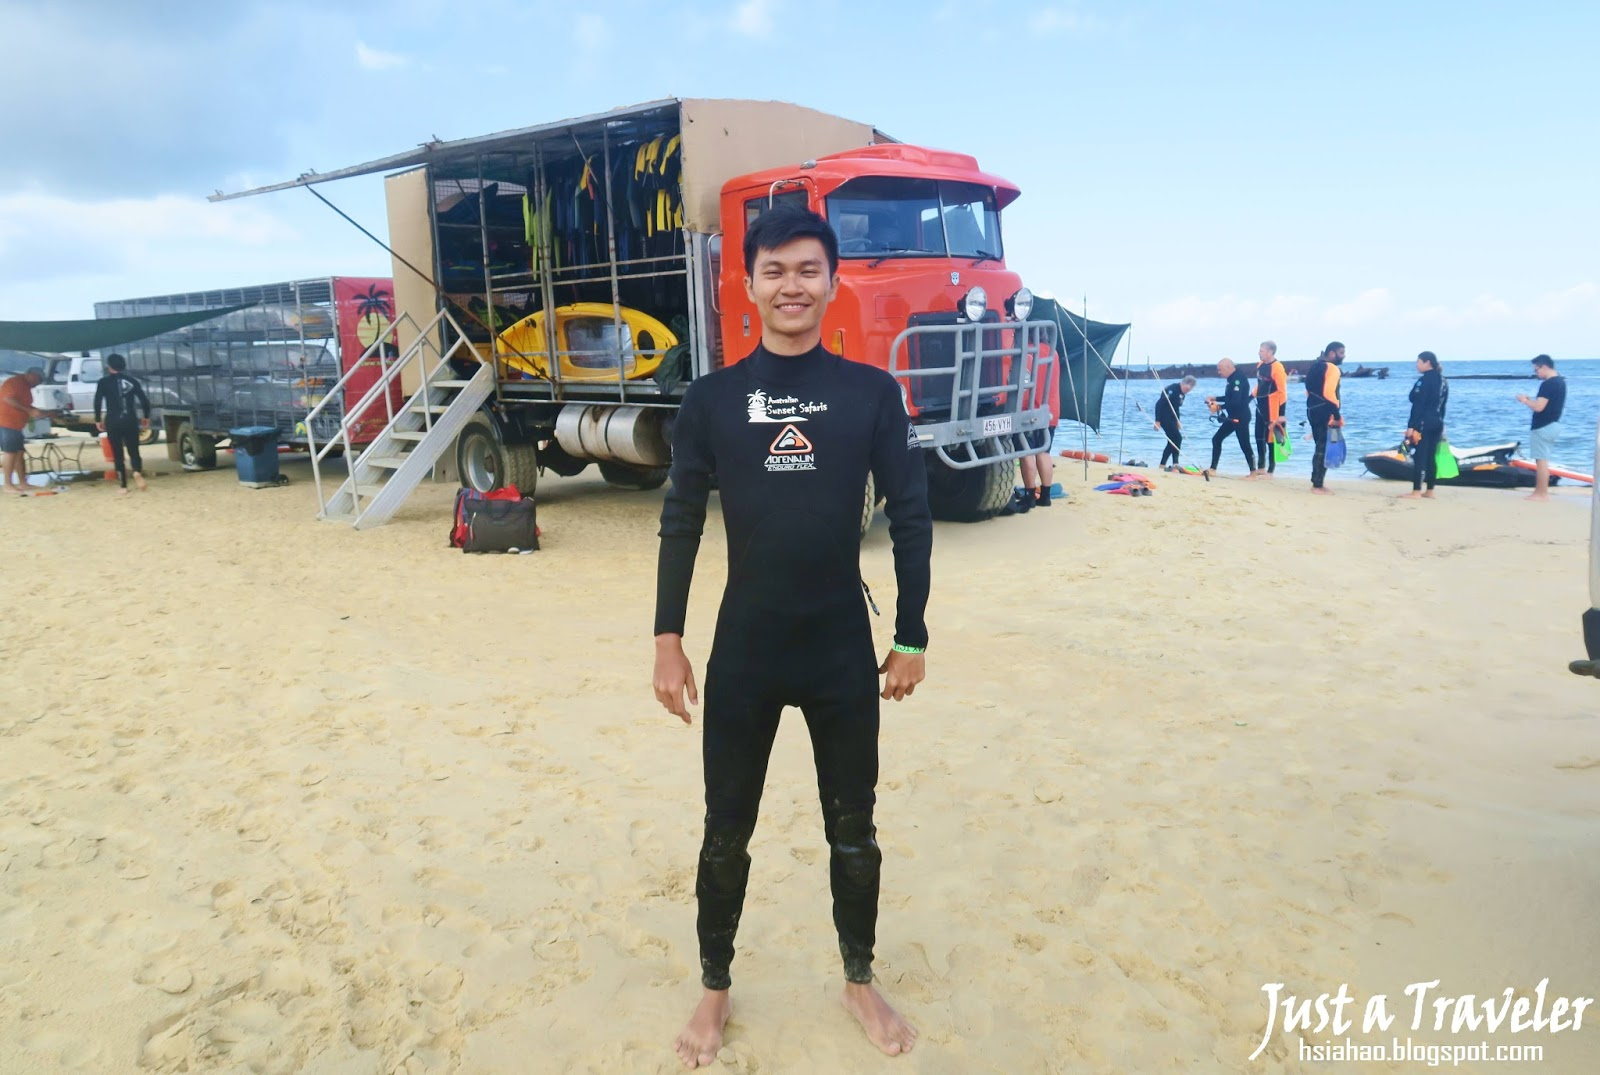 布里斯本-摩頓島-浮潛-Snorkeling-推薦-旅遊-自由行-澳洲-Brisbane-Moreton-Island-Tourist-Attraction-Travel-Australia